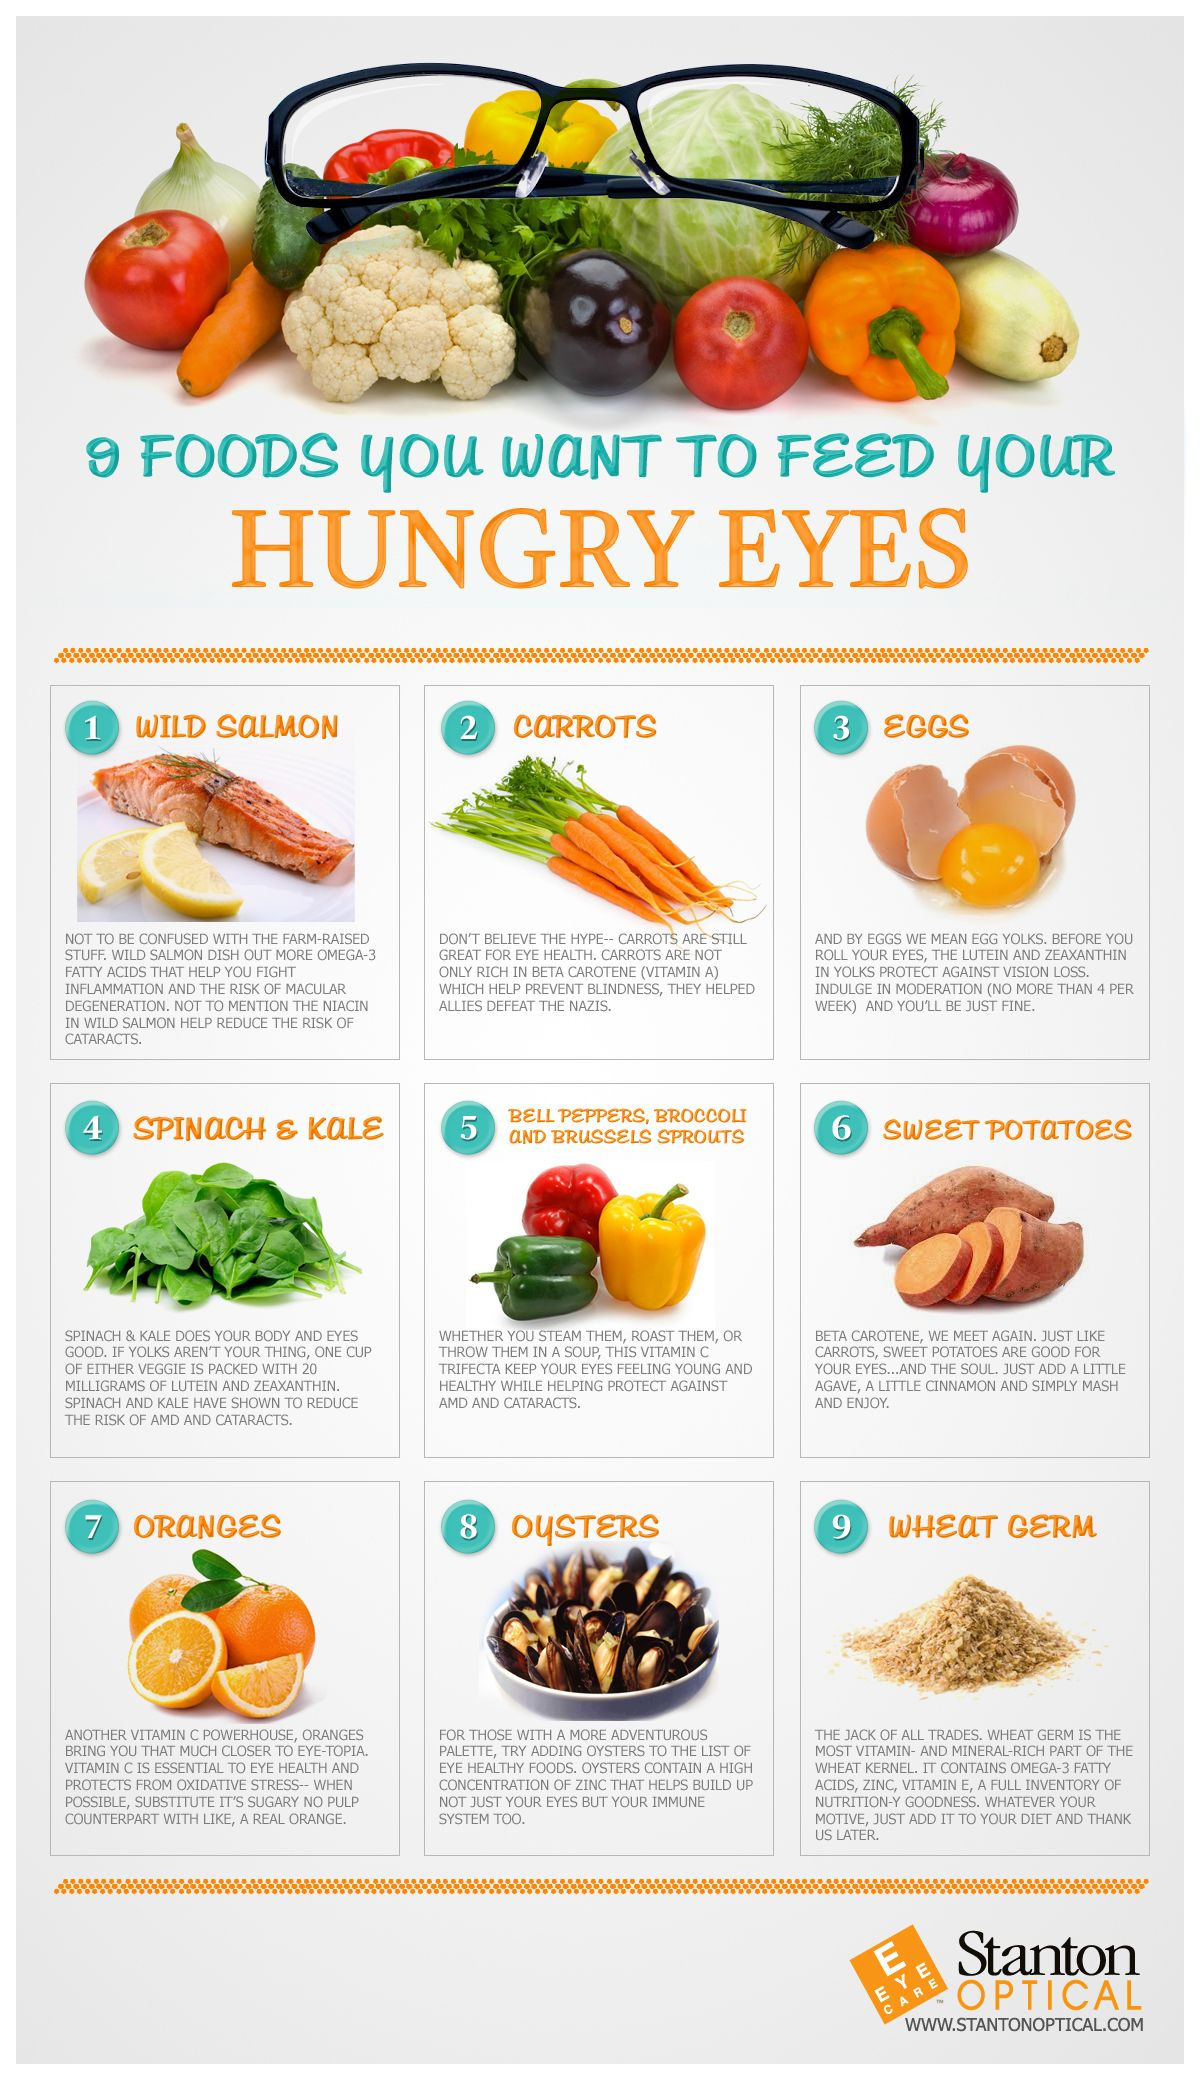 Diet For The Healthy Eyes: Which Foods You Should Be 'Eyeing'